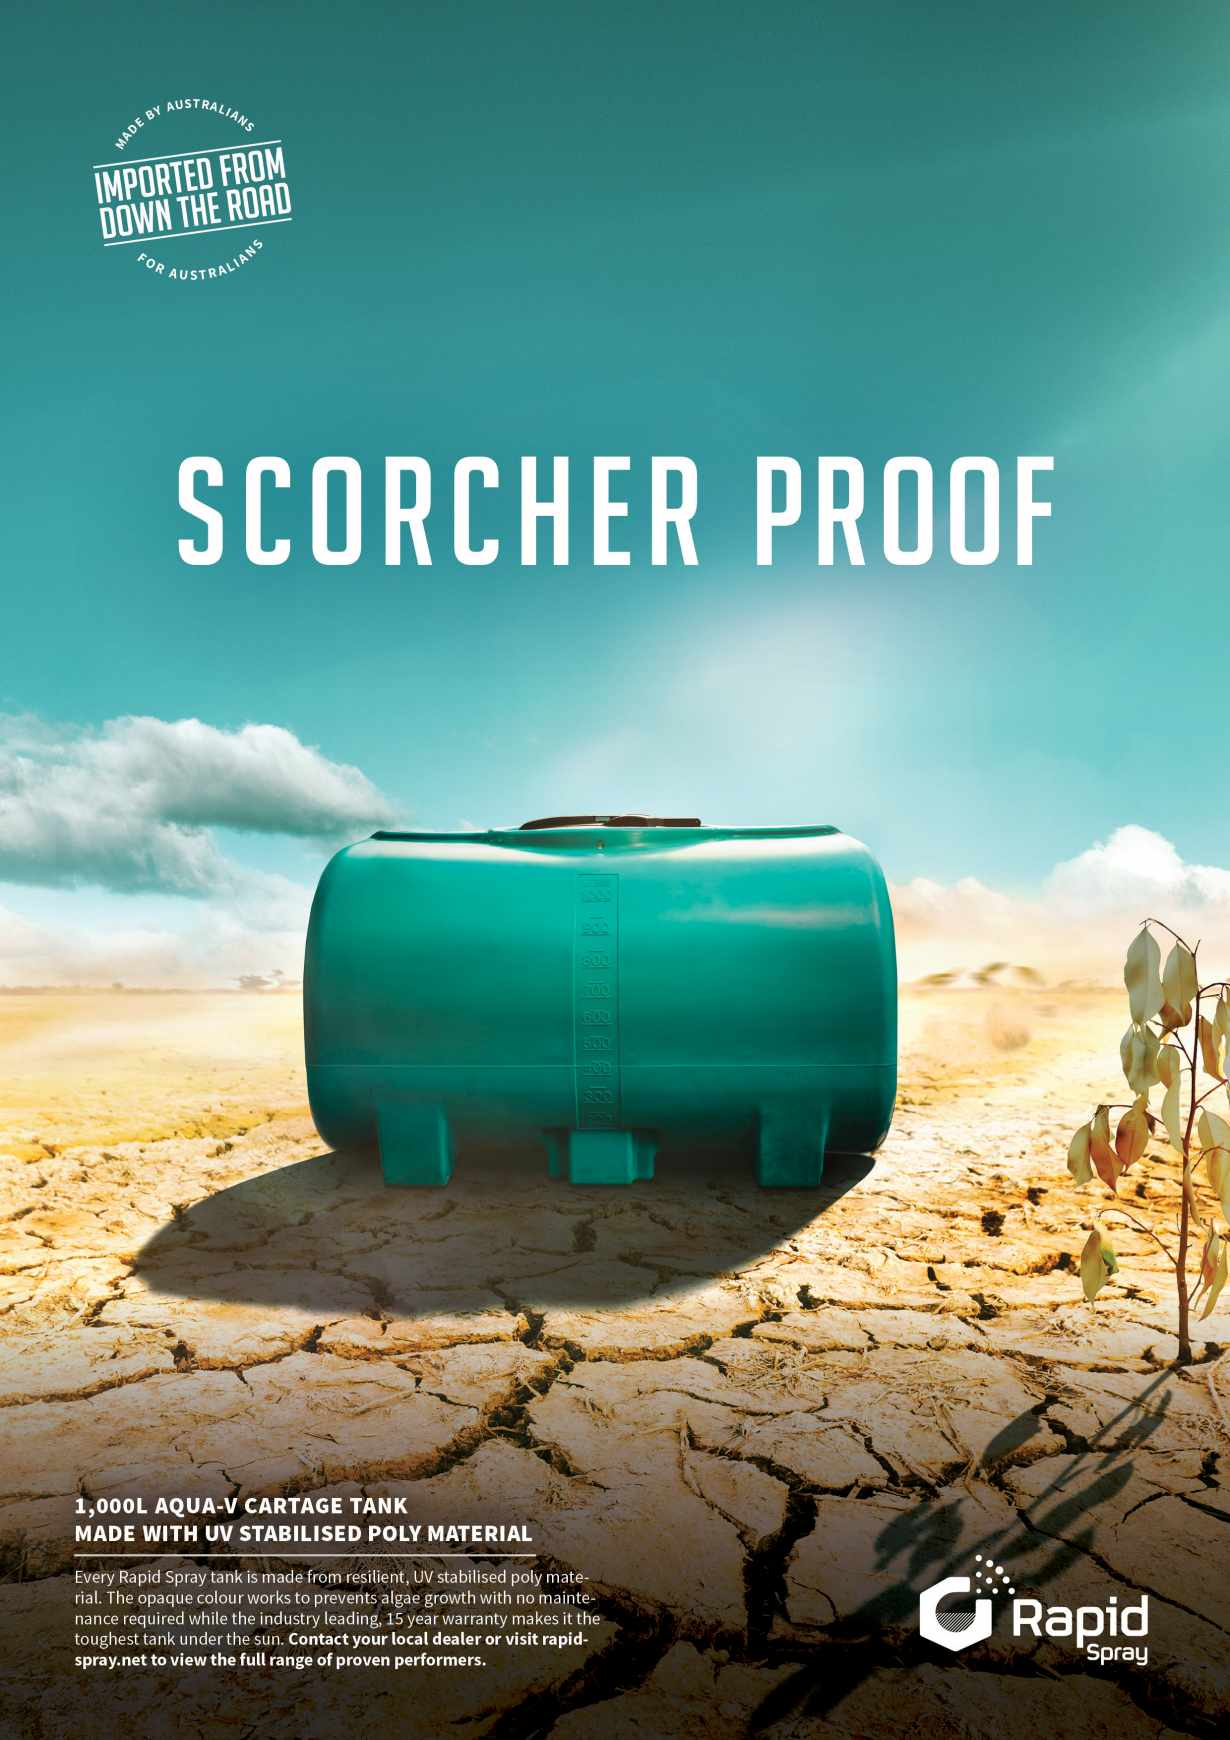 Rapid Spray Print Ad - Scorcher Proof